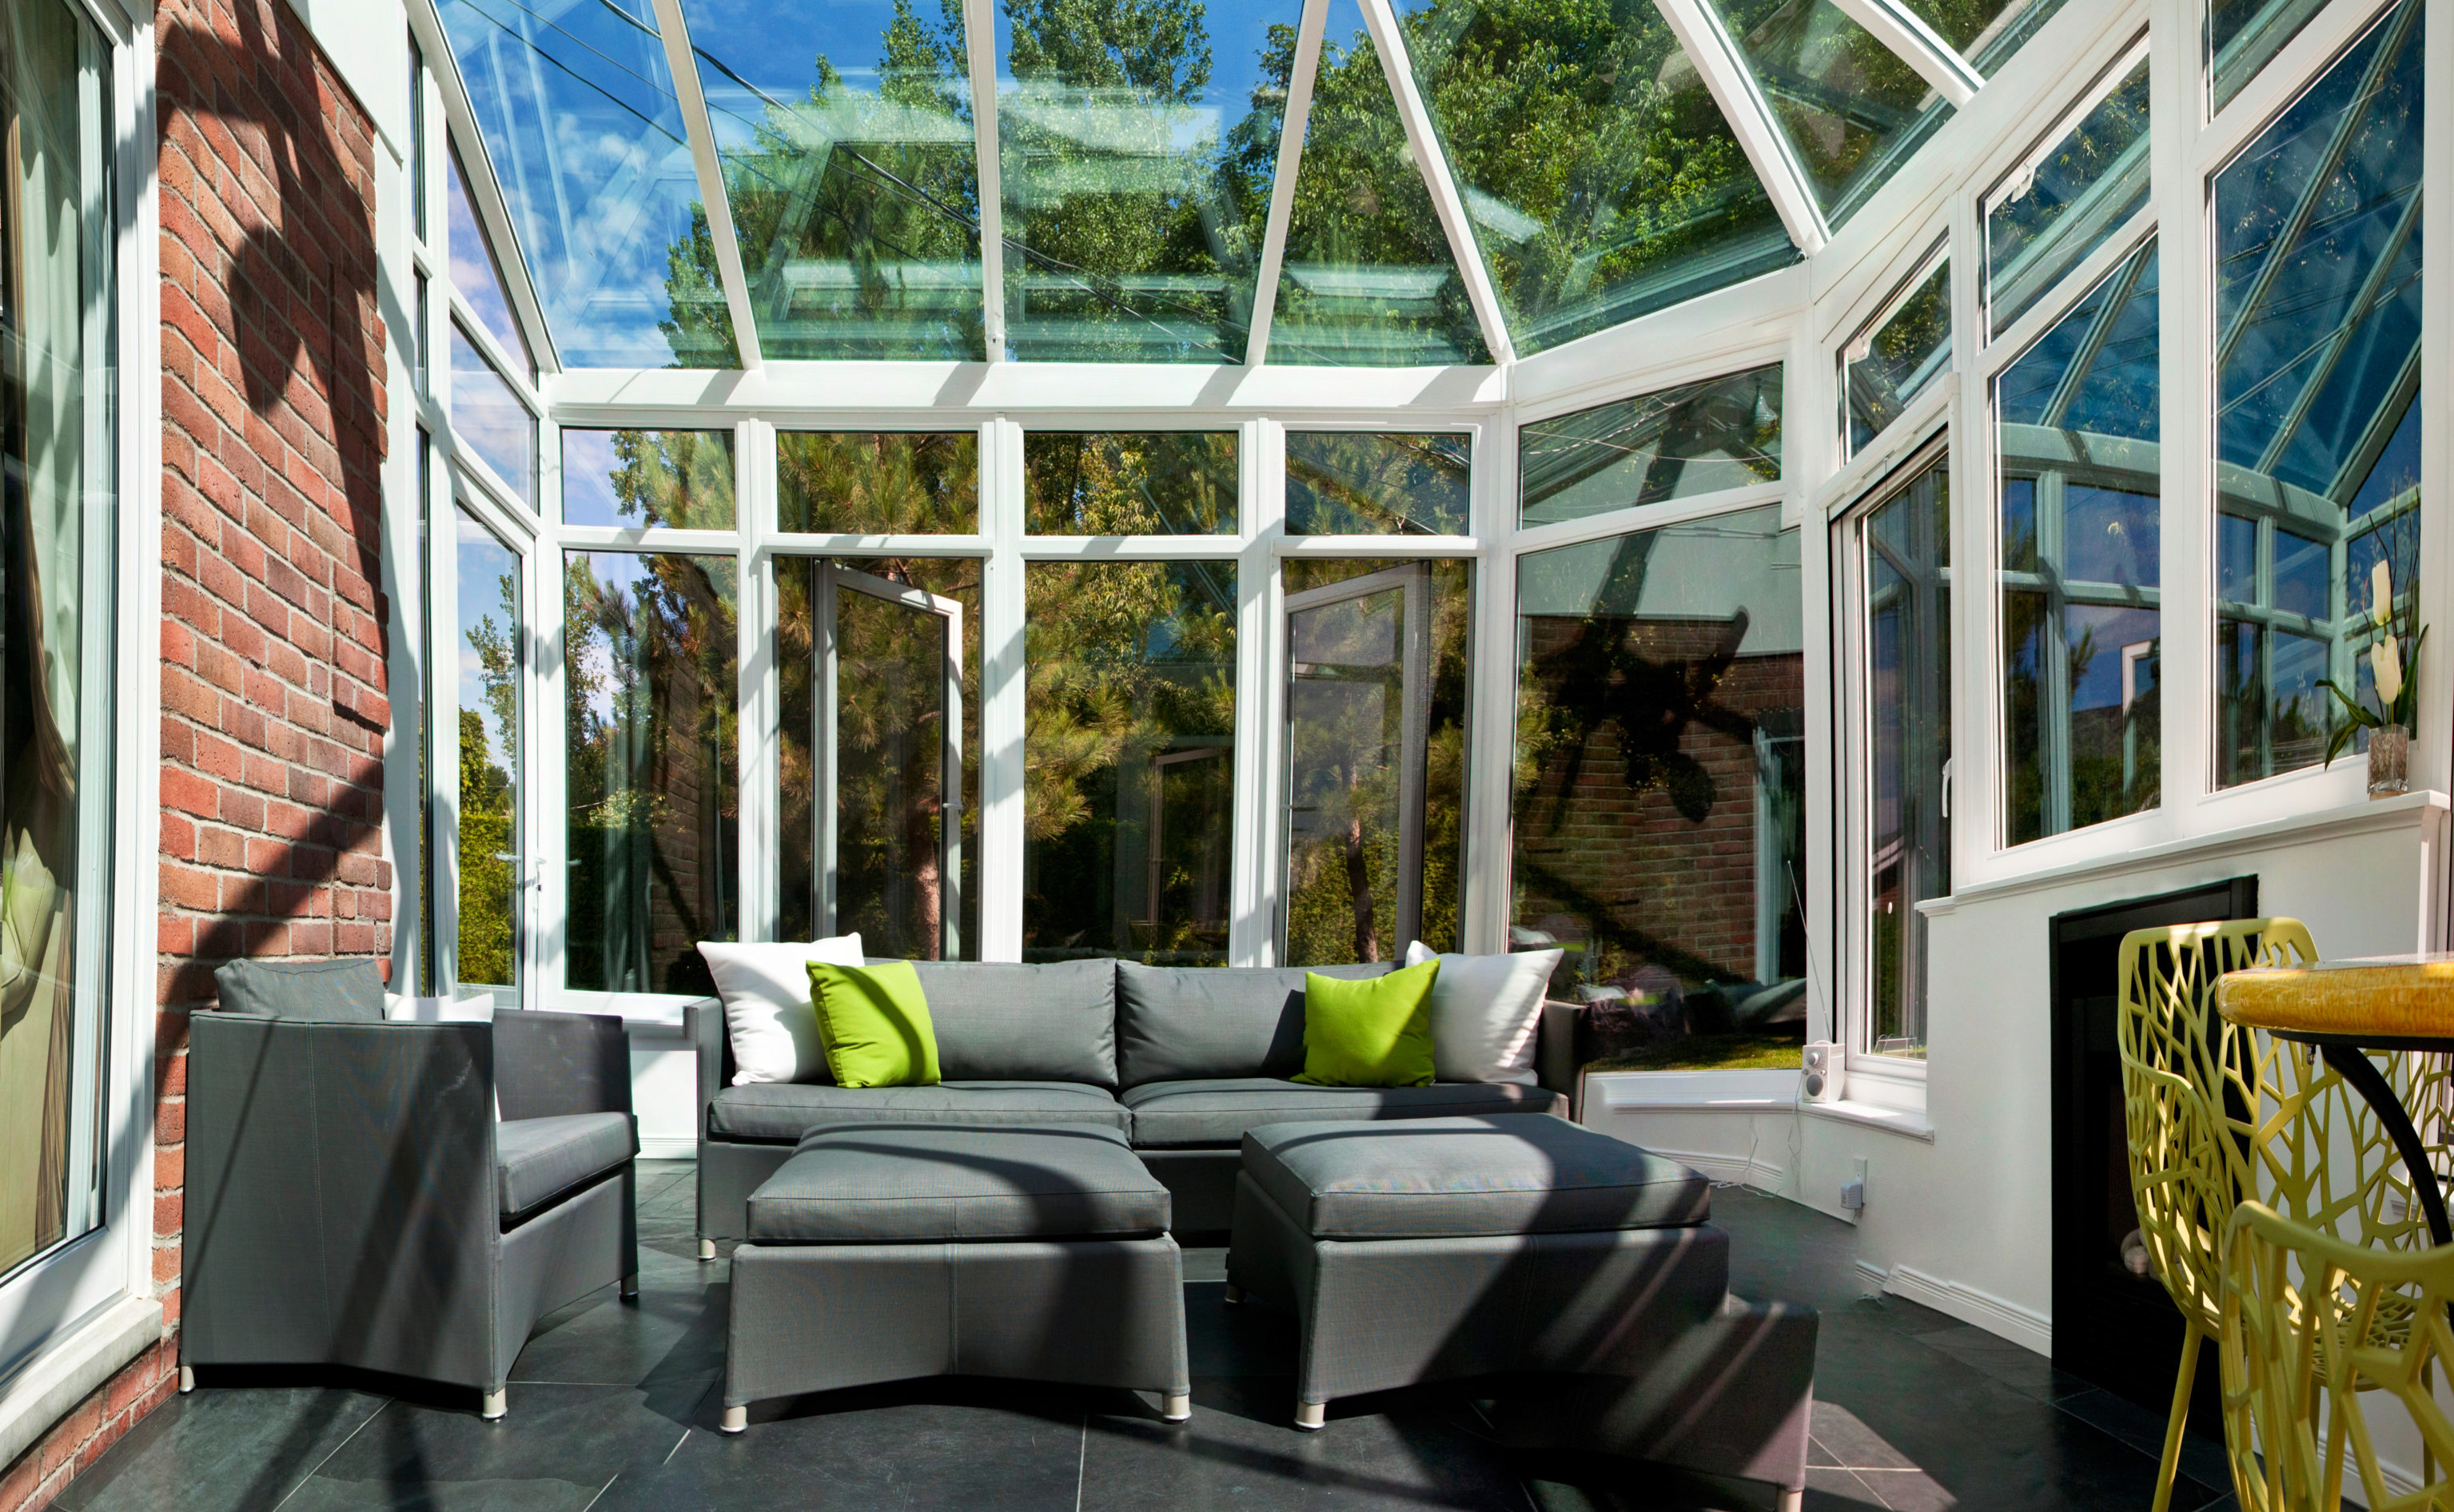 Pro sunroom designs in pittsburgh pro sunroom designs in Solarium design